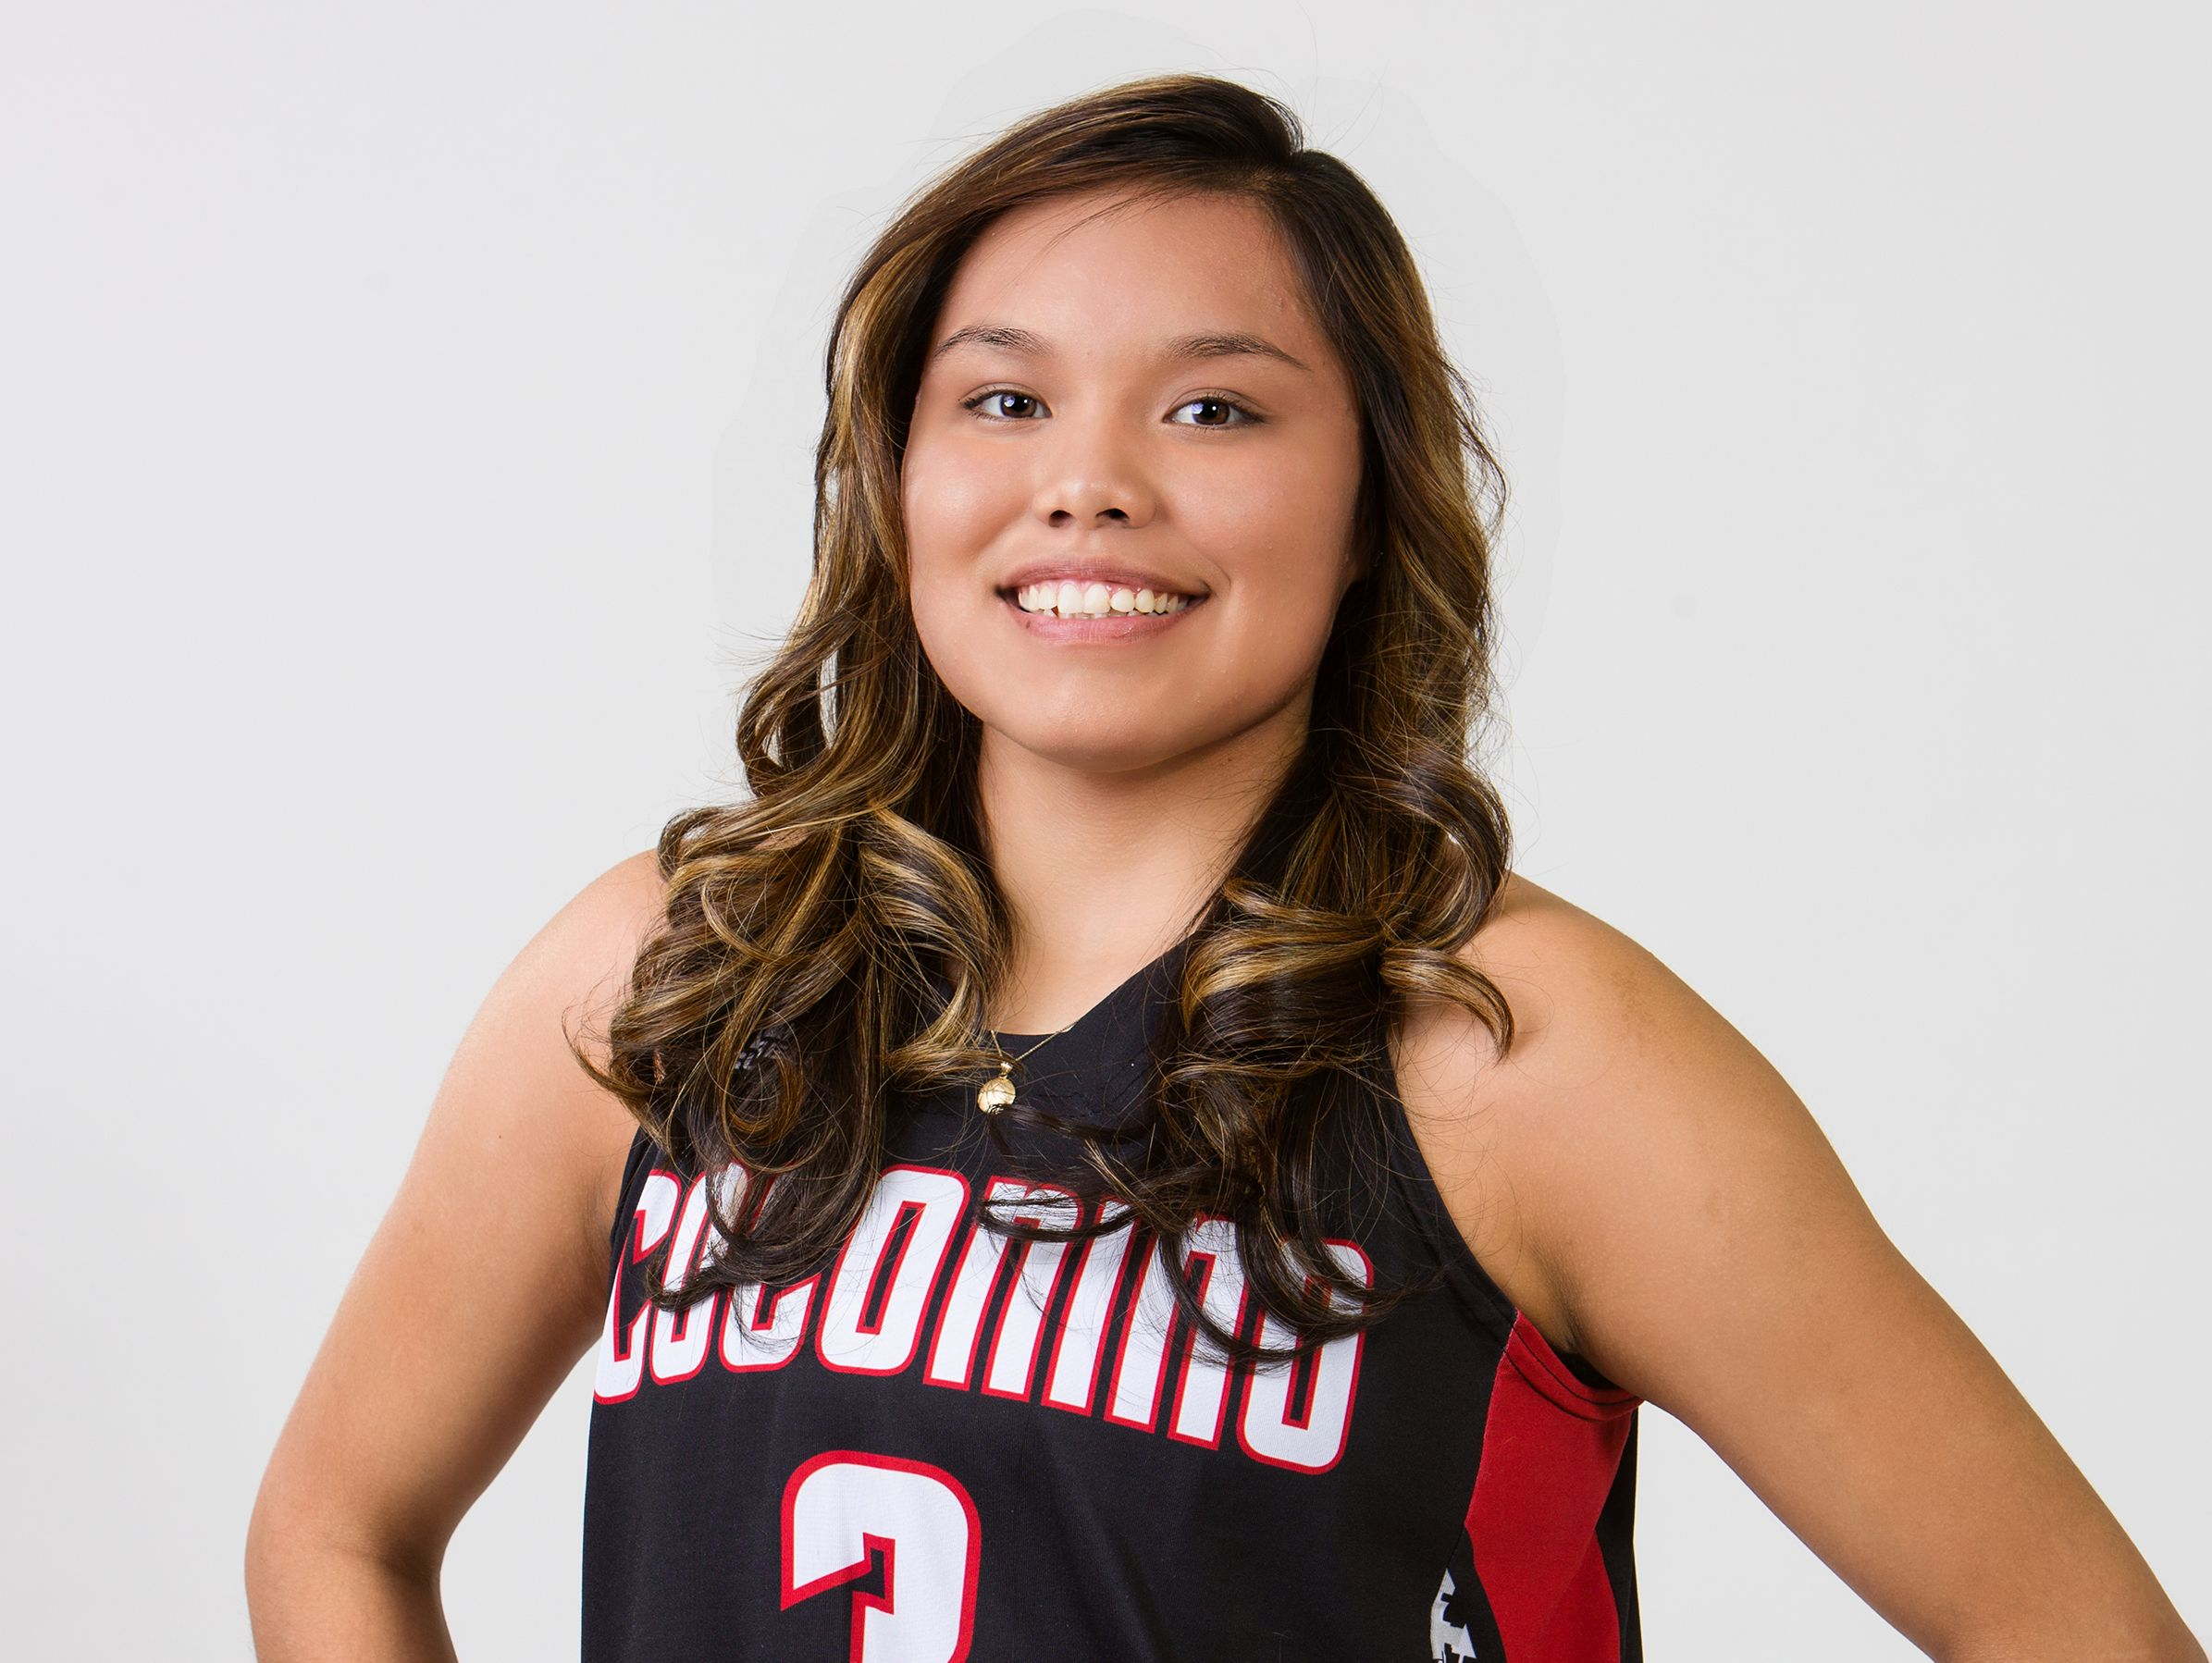 """Jacqulynn """"JJ"""" Nakai, from Coconino, is the Arizona Sports Awards Female Athlete of the Week, presented by La-Z-Boy Furniture Galleries, for Jan. 19-26."""